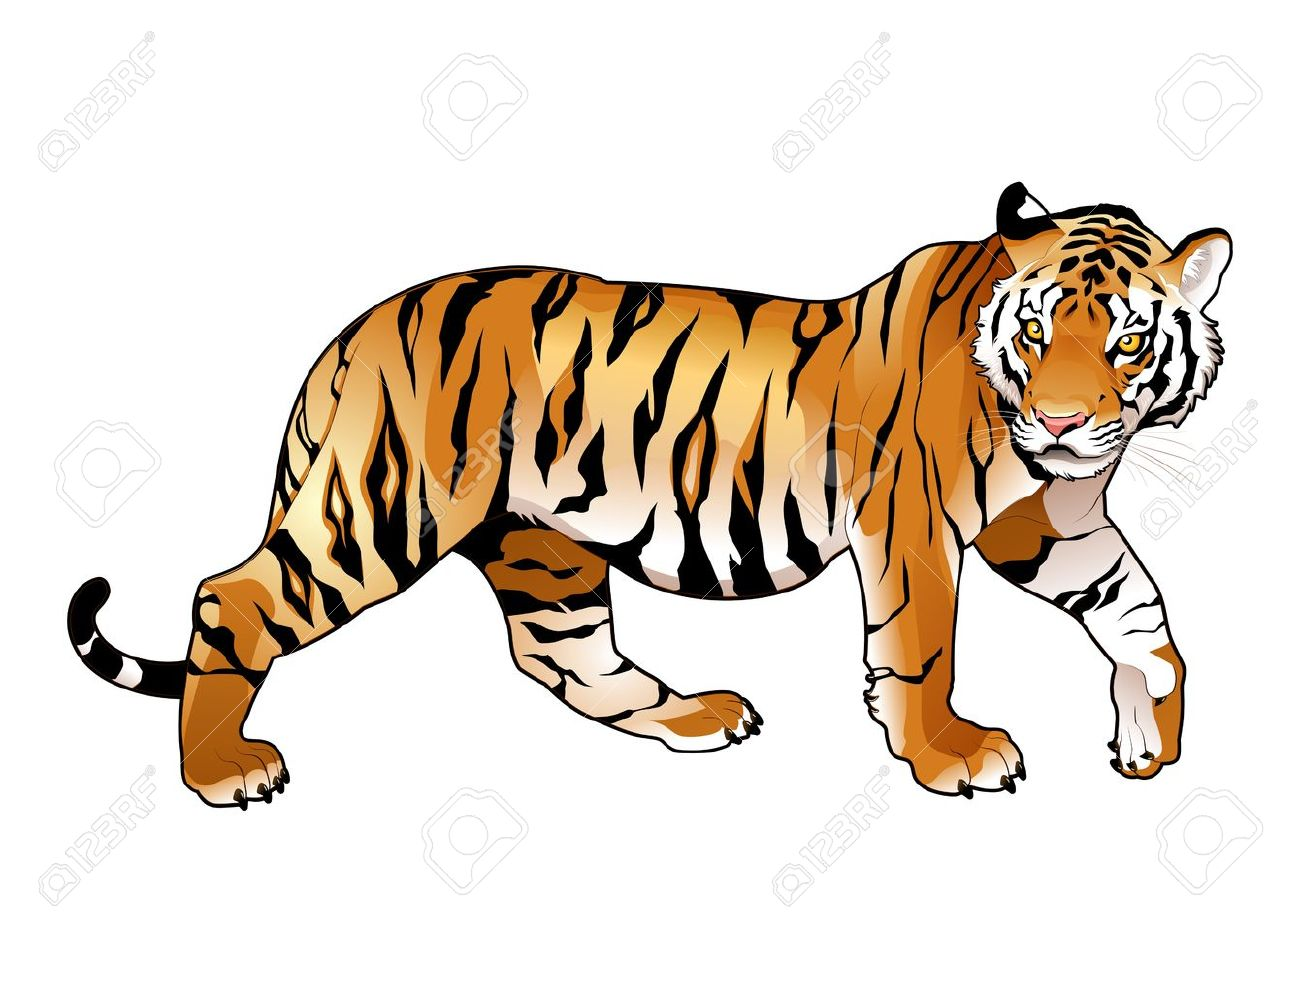 Clipart tiger. Lily at getdrawings com